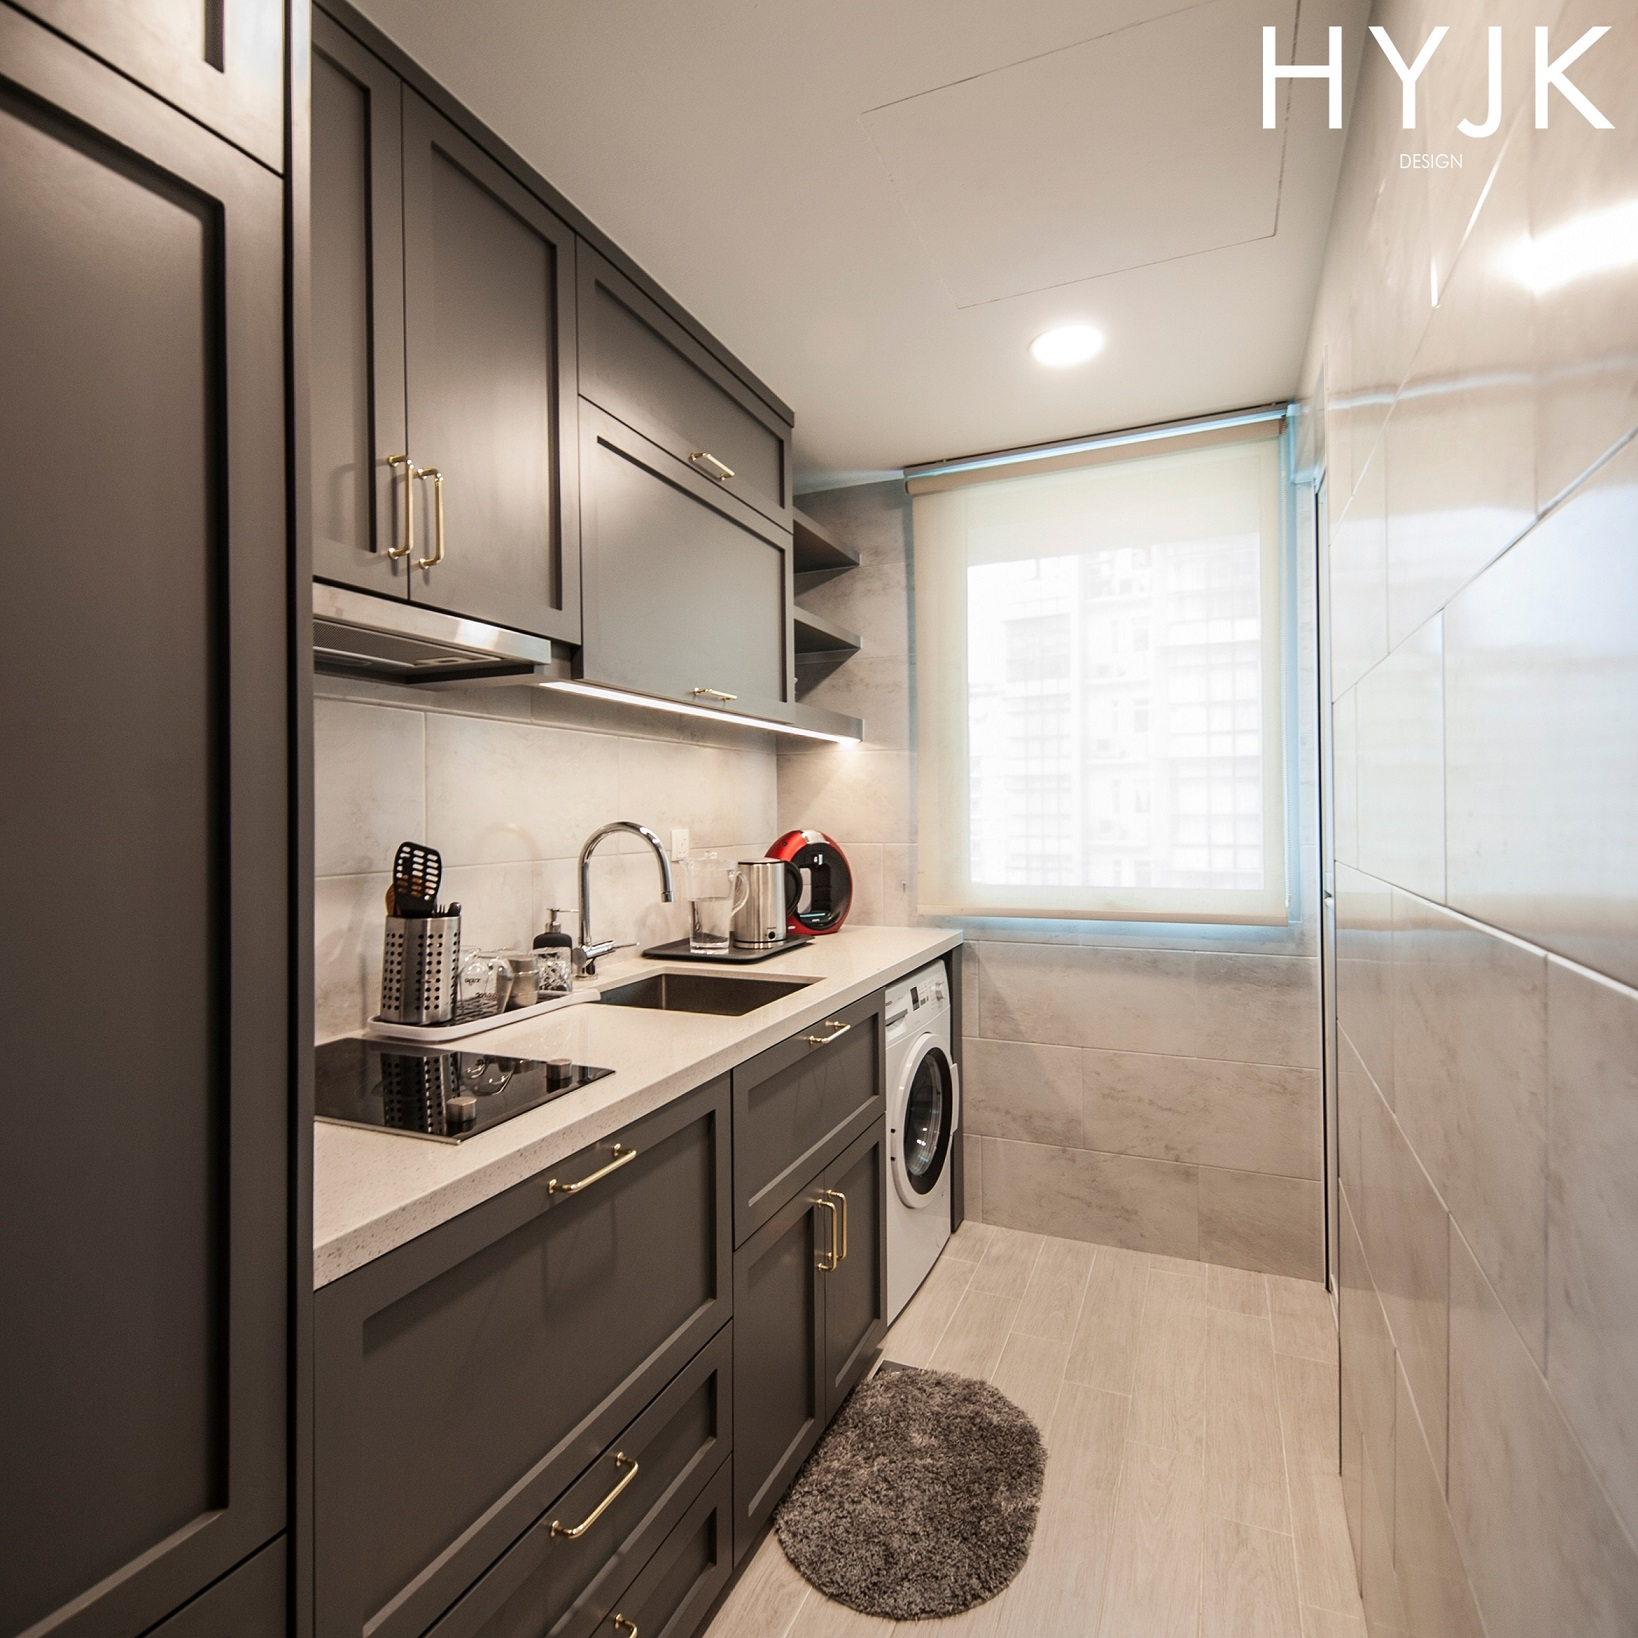 A small but space efficient kitchen.